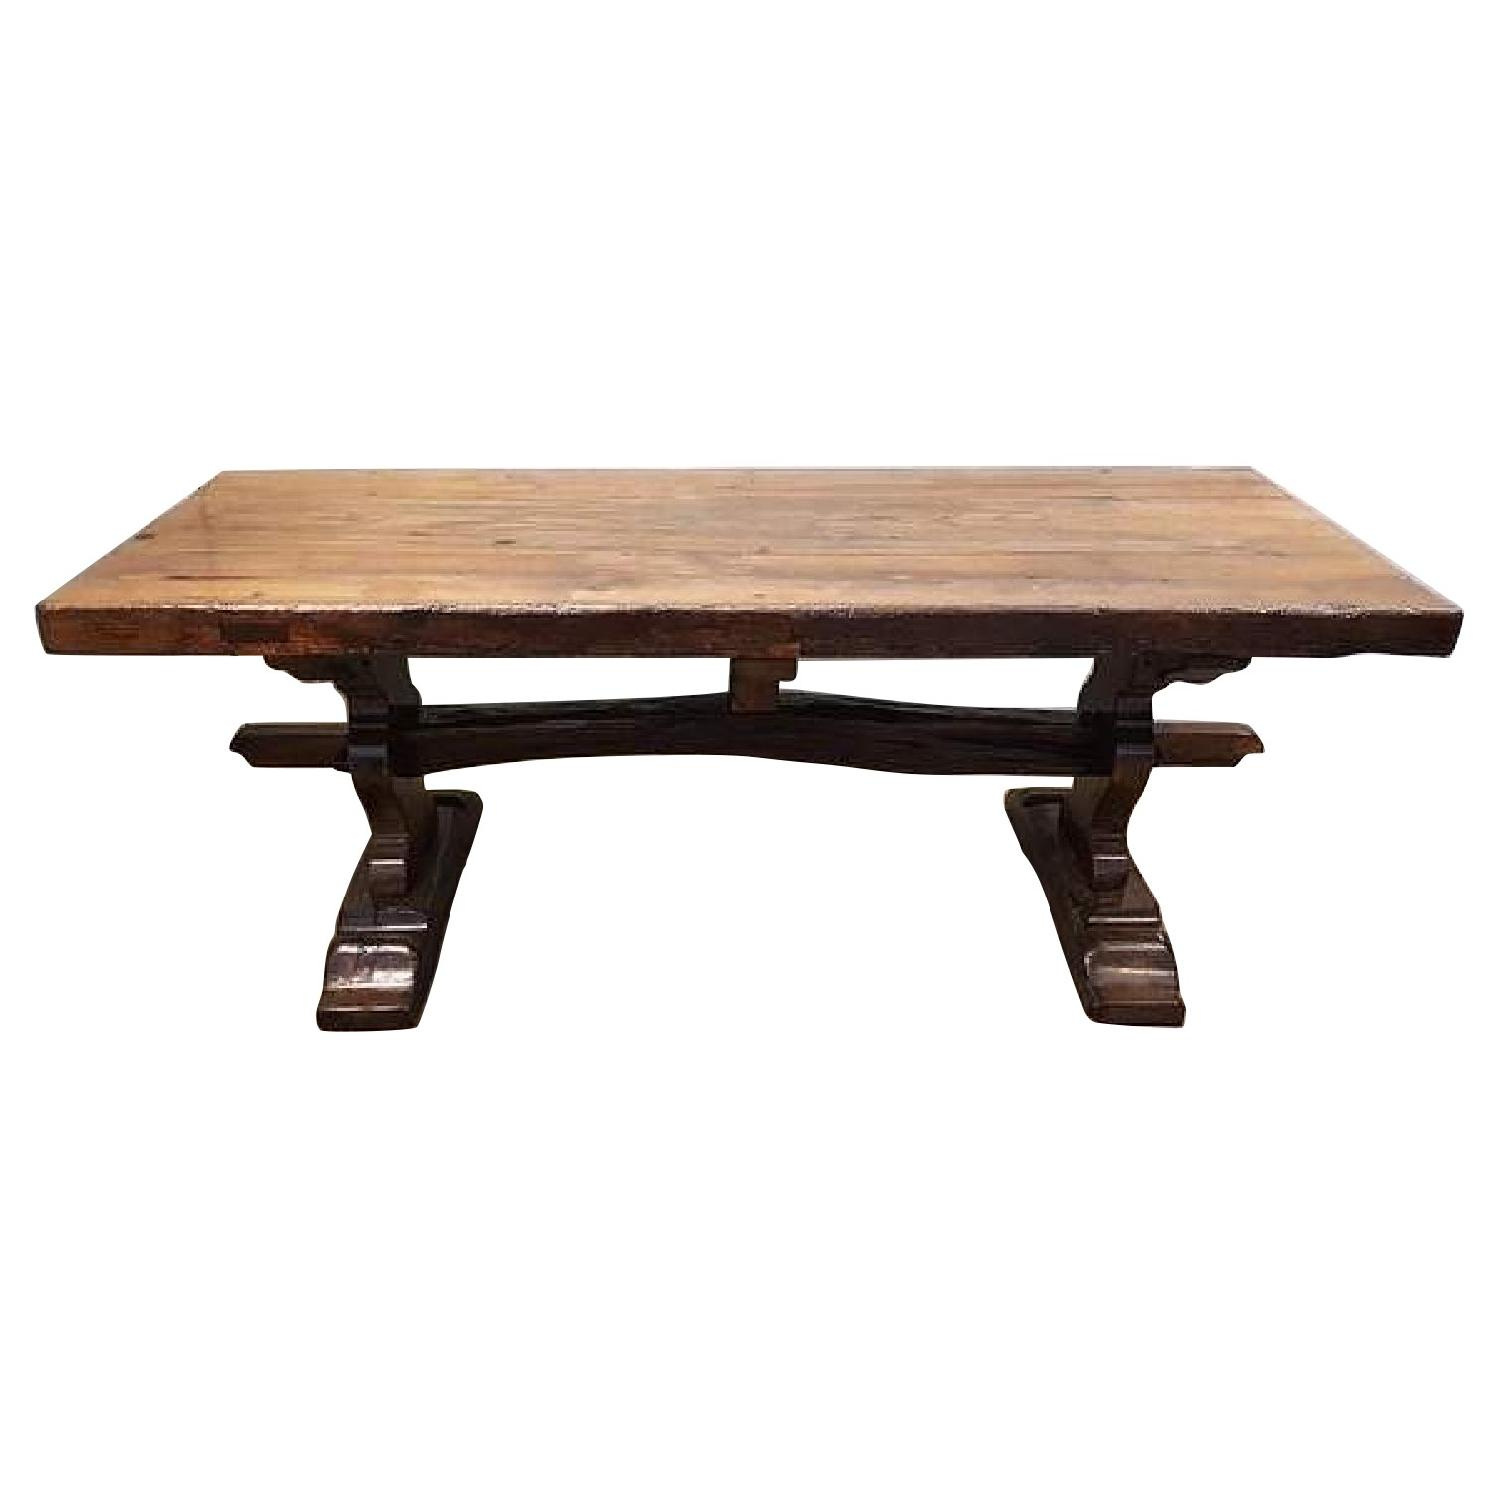 Antique 1800 French Solid Oak Trestle Dining Table